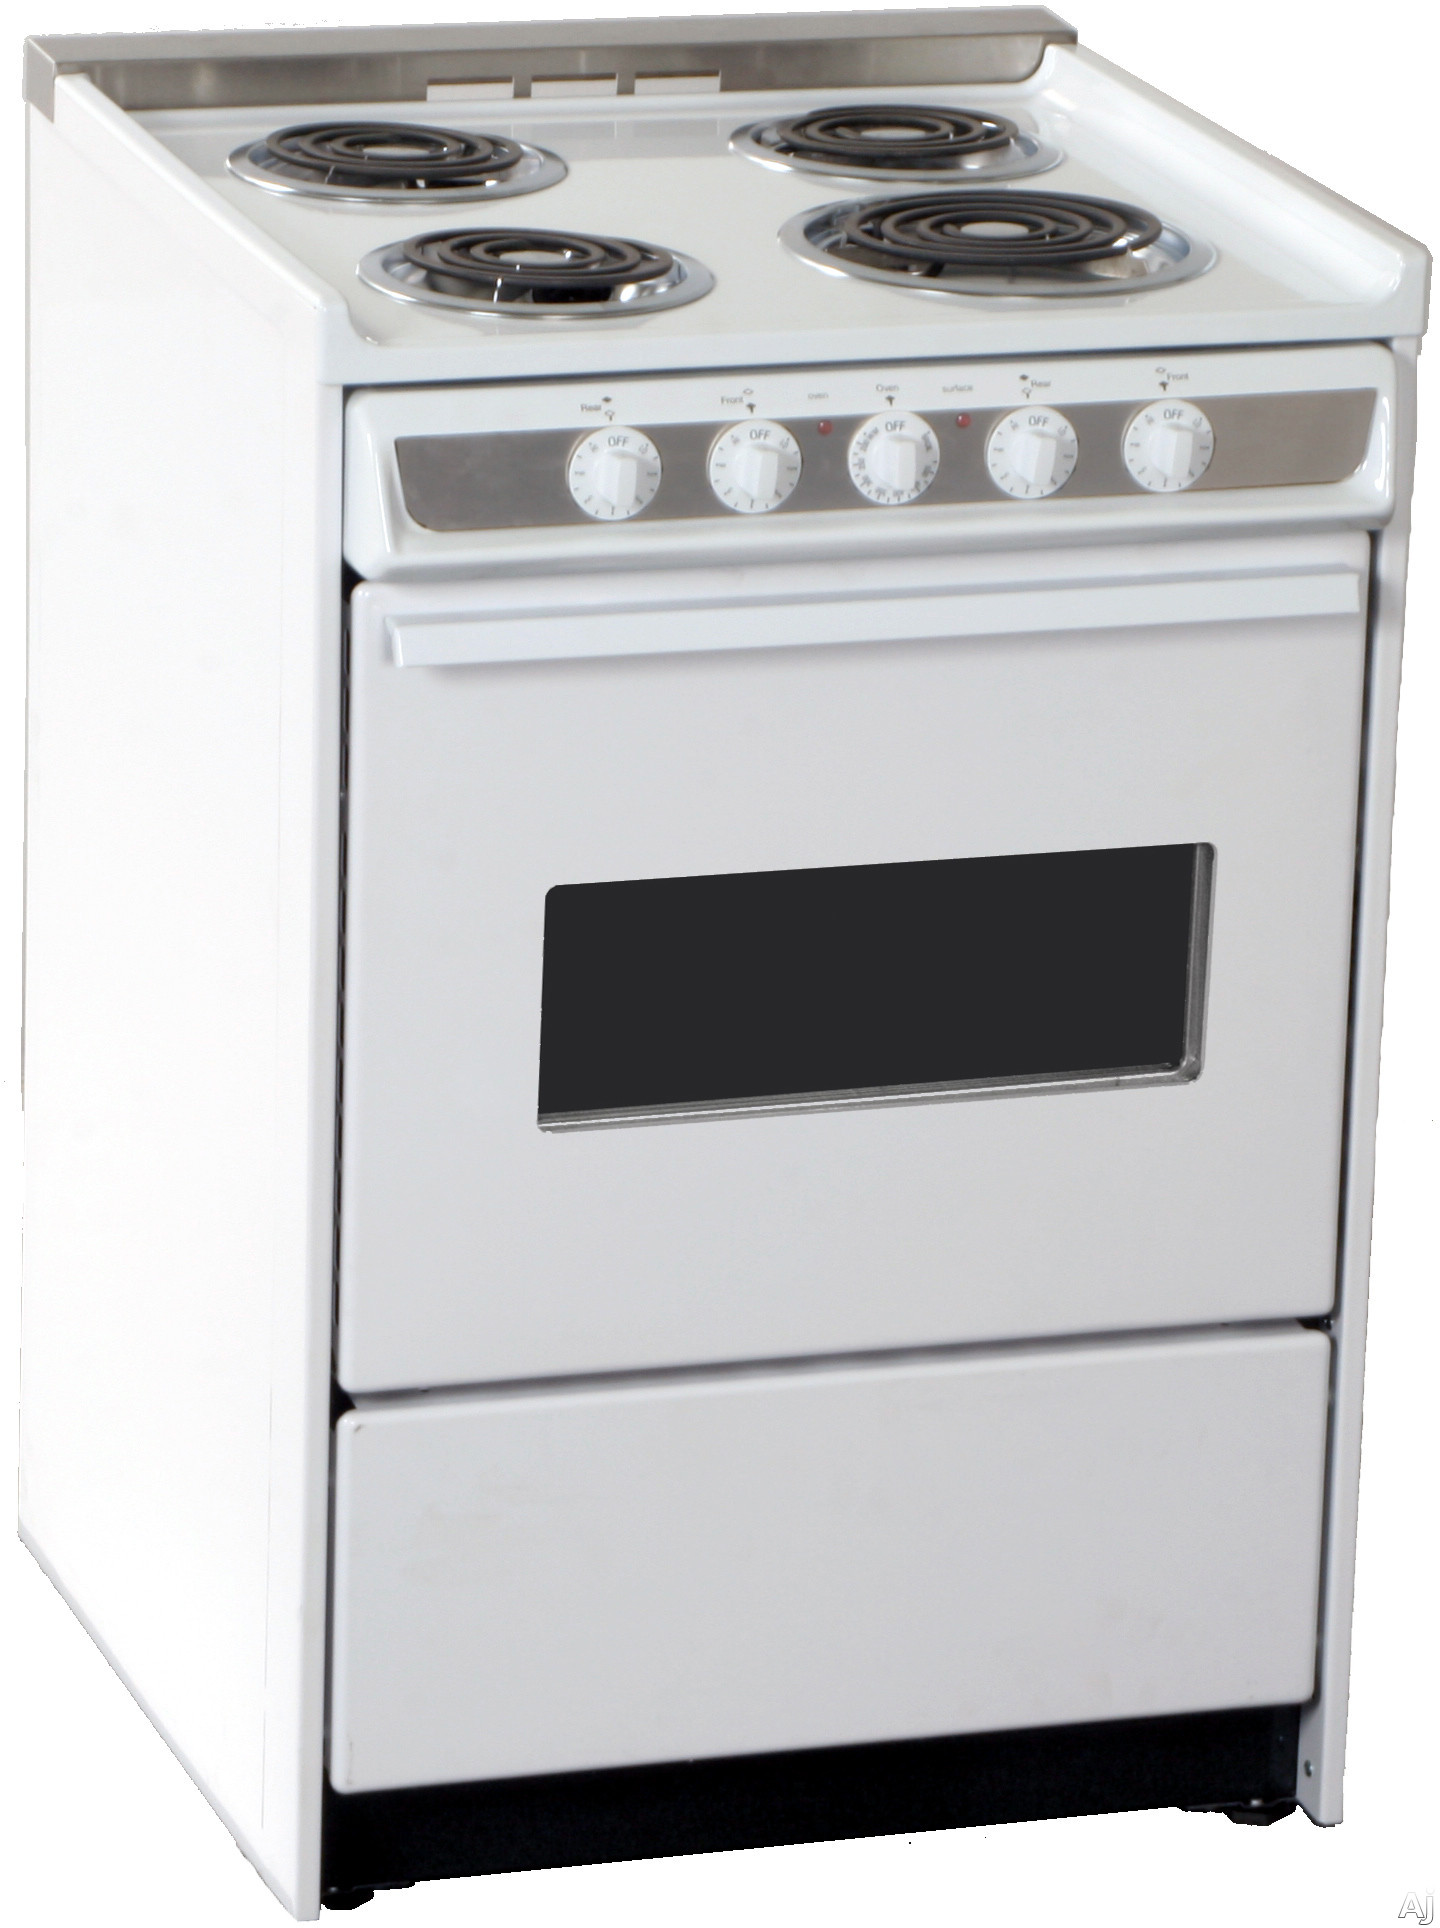 summit wem619rw 24 inch slide in electric range with